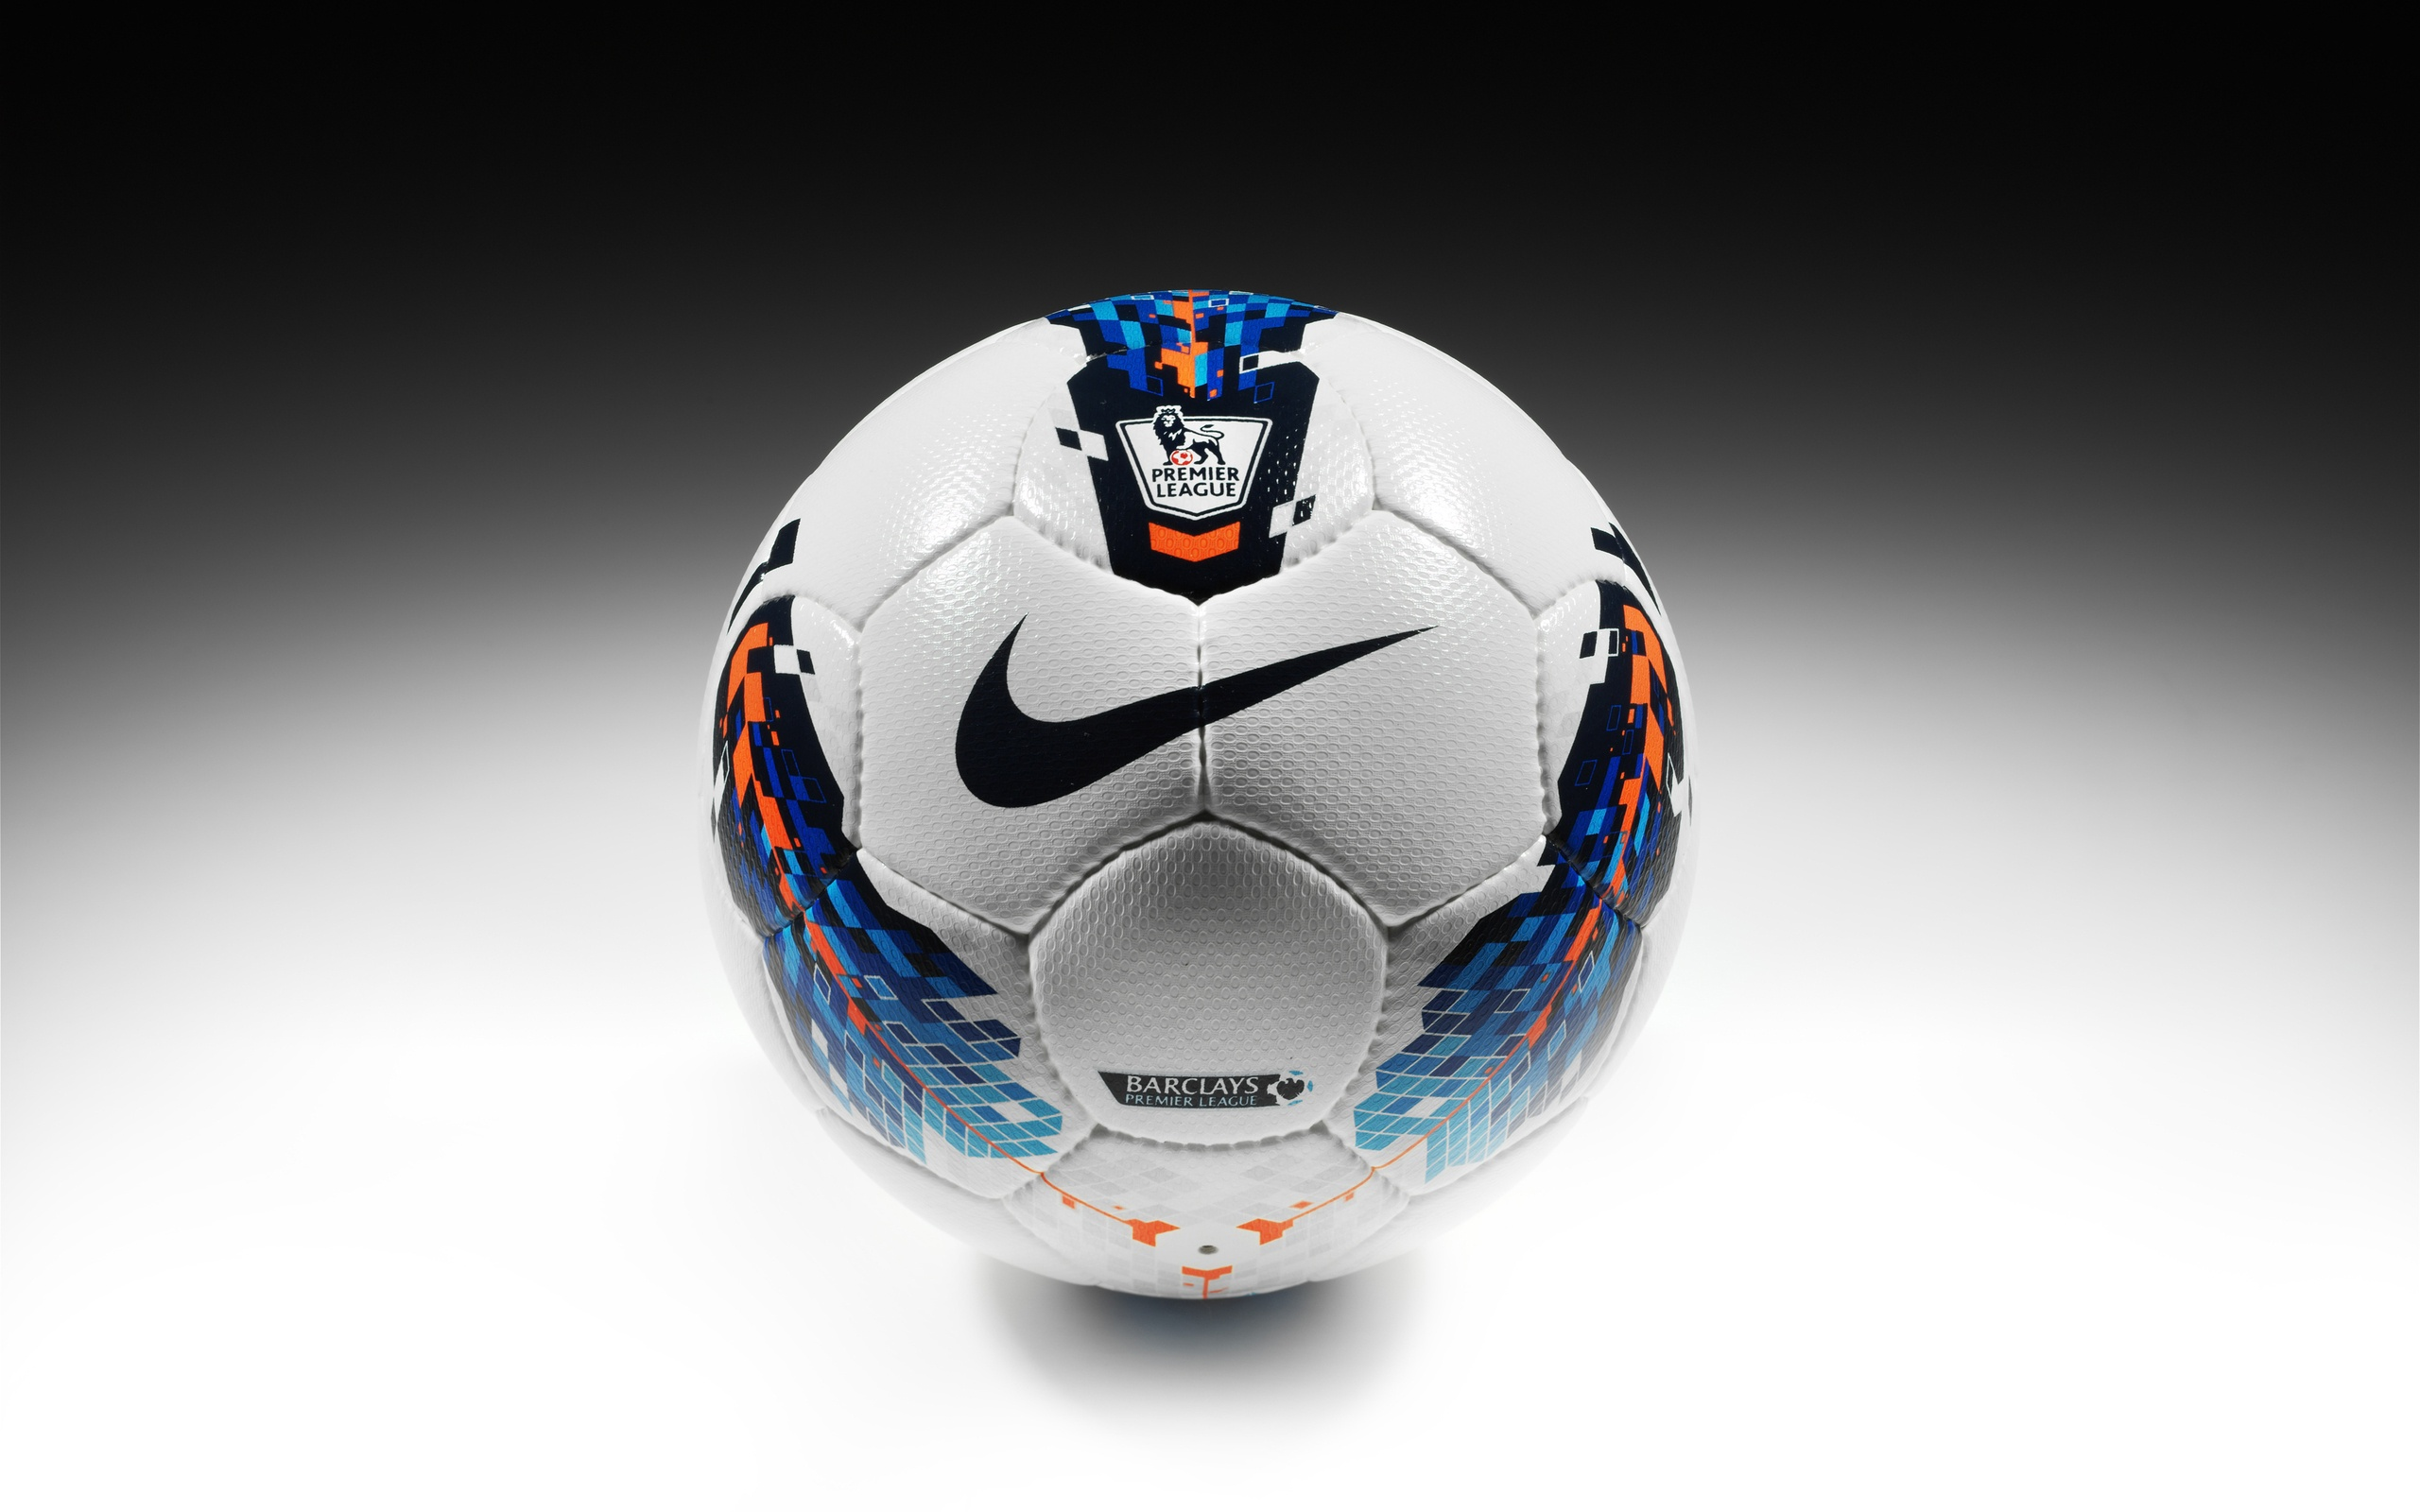 Nike Soccer Ball Wallpaper   Soccer Walls 2560x1600